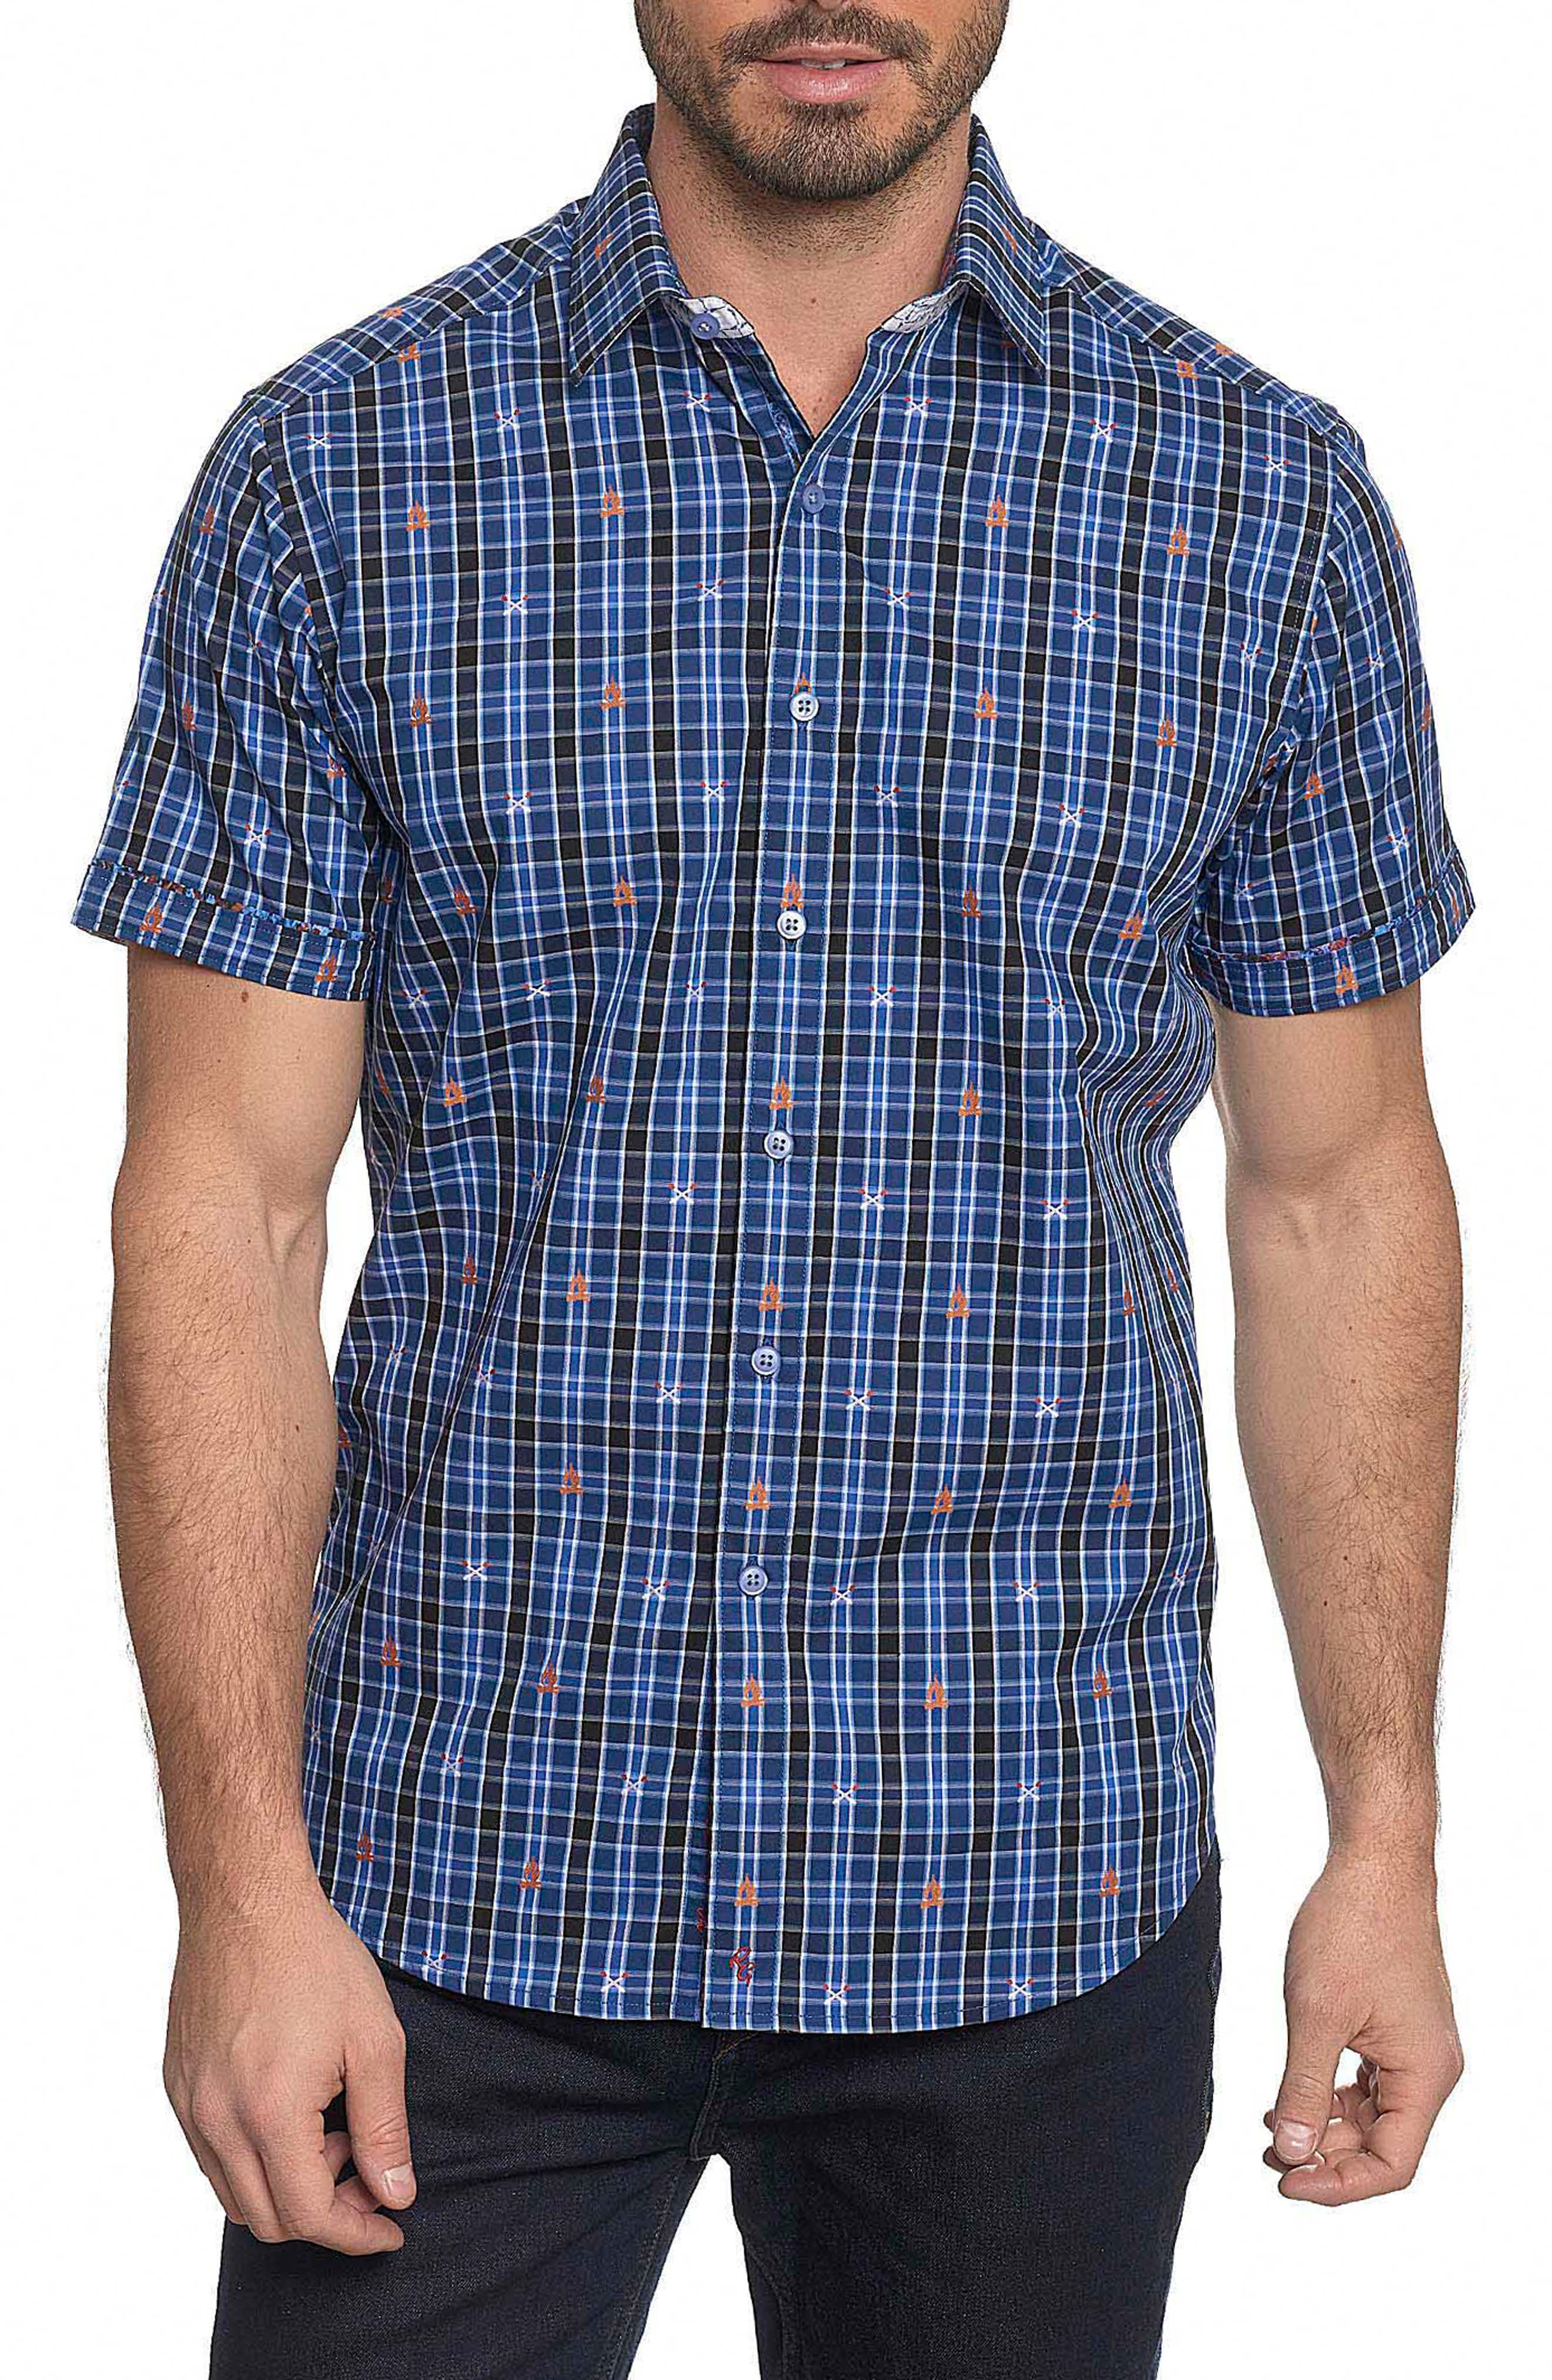 ROBERT GRAHAM Campfire Embroidered Check Sport Shirt